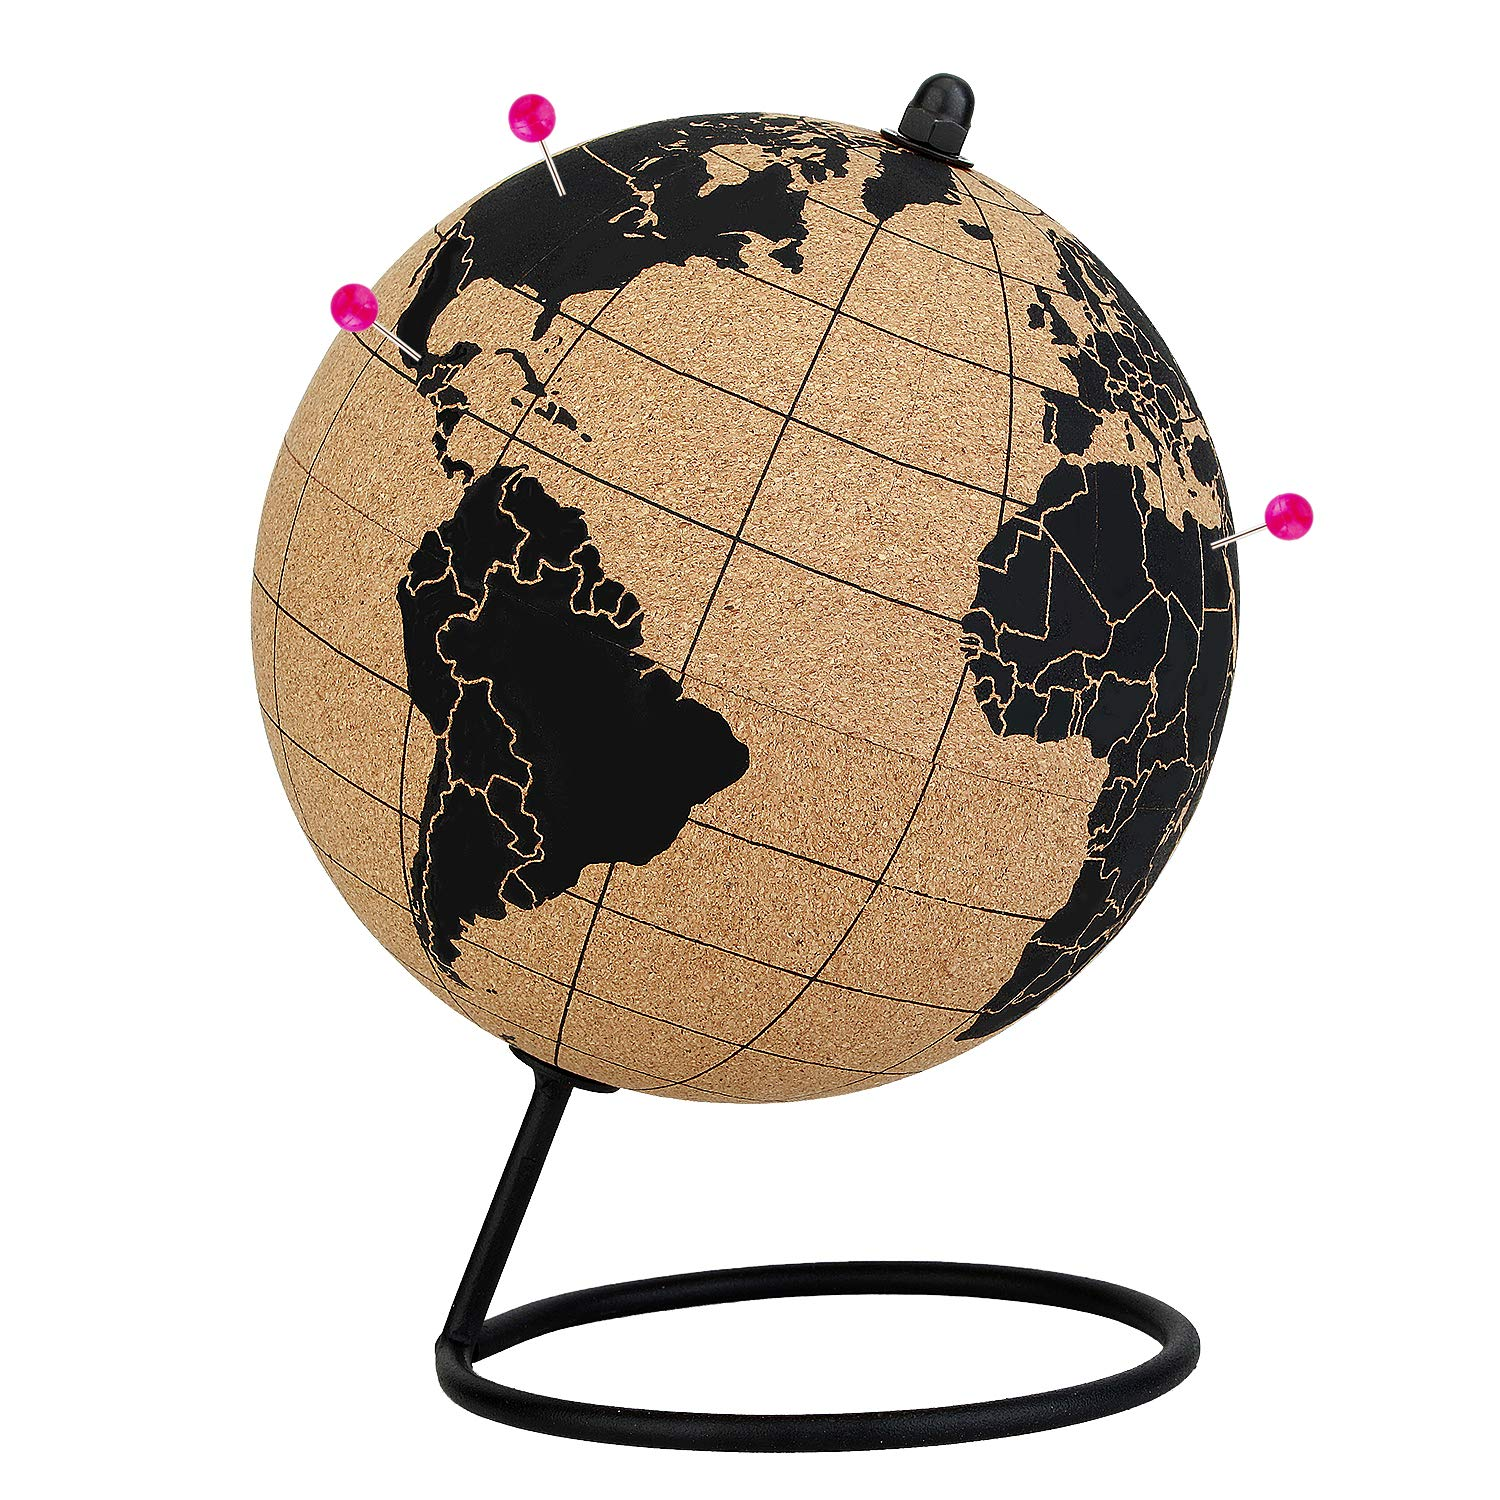 Cork Globe with Push Pins - 5.7 Inches Desktop World Globe - Educational World Map - Durable Metal Base - Easy Spin - Travel Accessory - Home Office Decor - Geographic Globes Discovery The World by win-wincoop